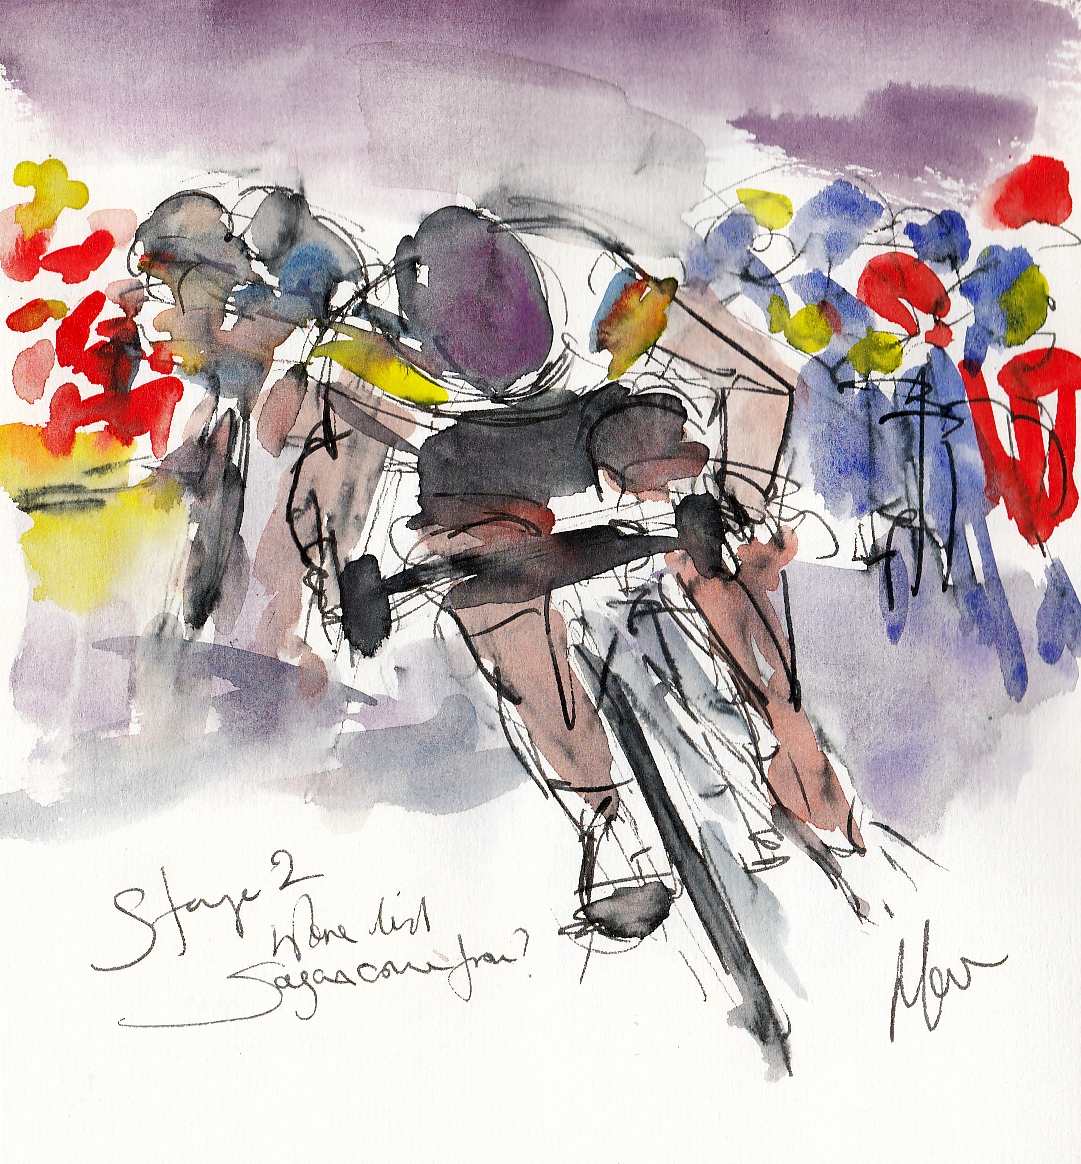 Tour de France, Cycling art, Where did Sagan come from?